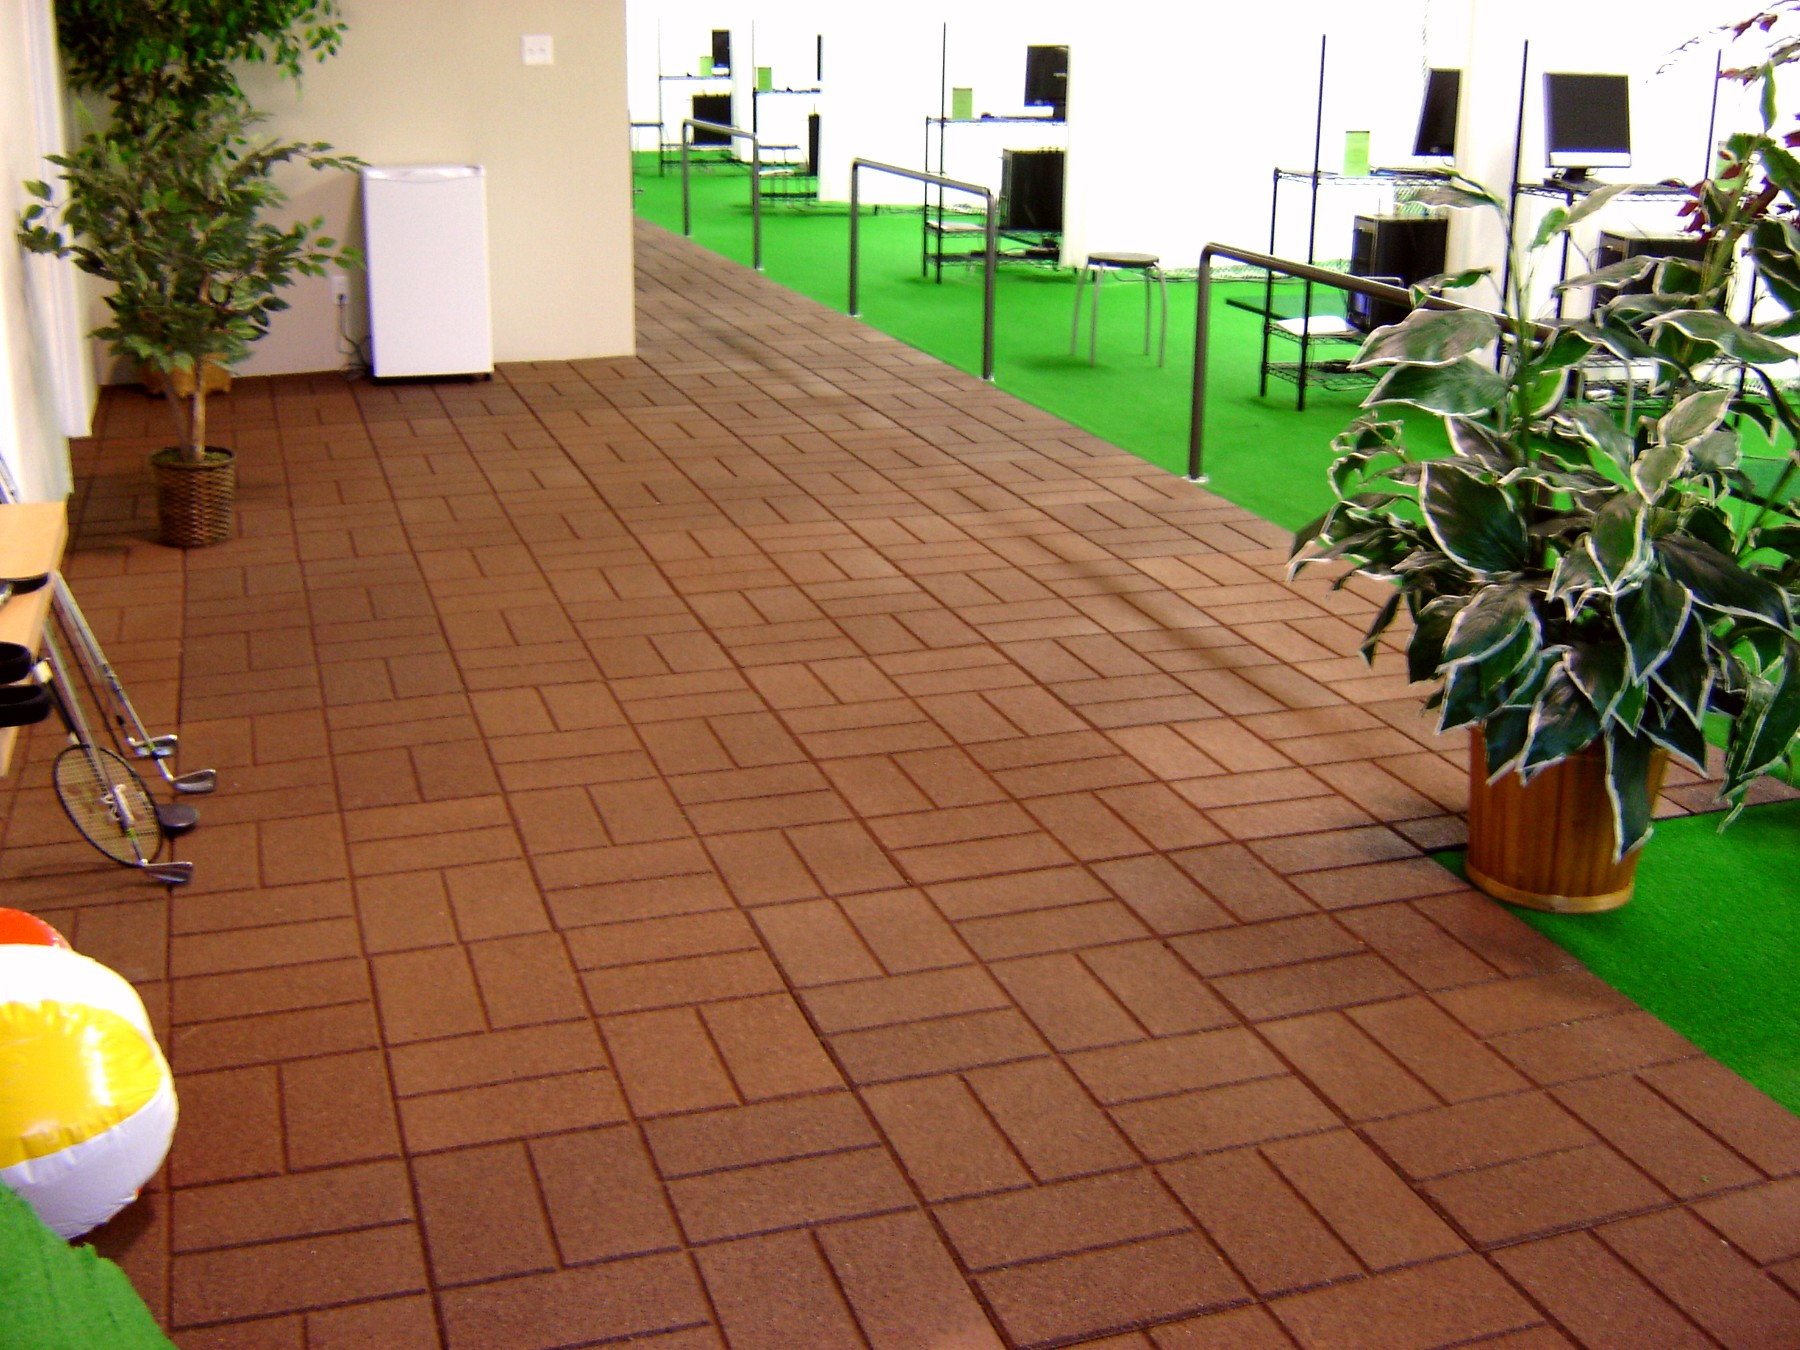 Outdoor Rubber Tiles For Patio Designs Pertaining To Size 1800 X 1350